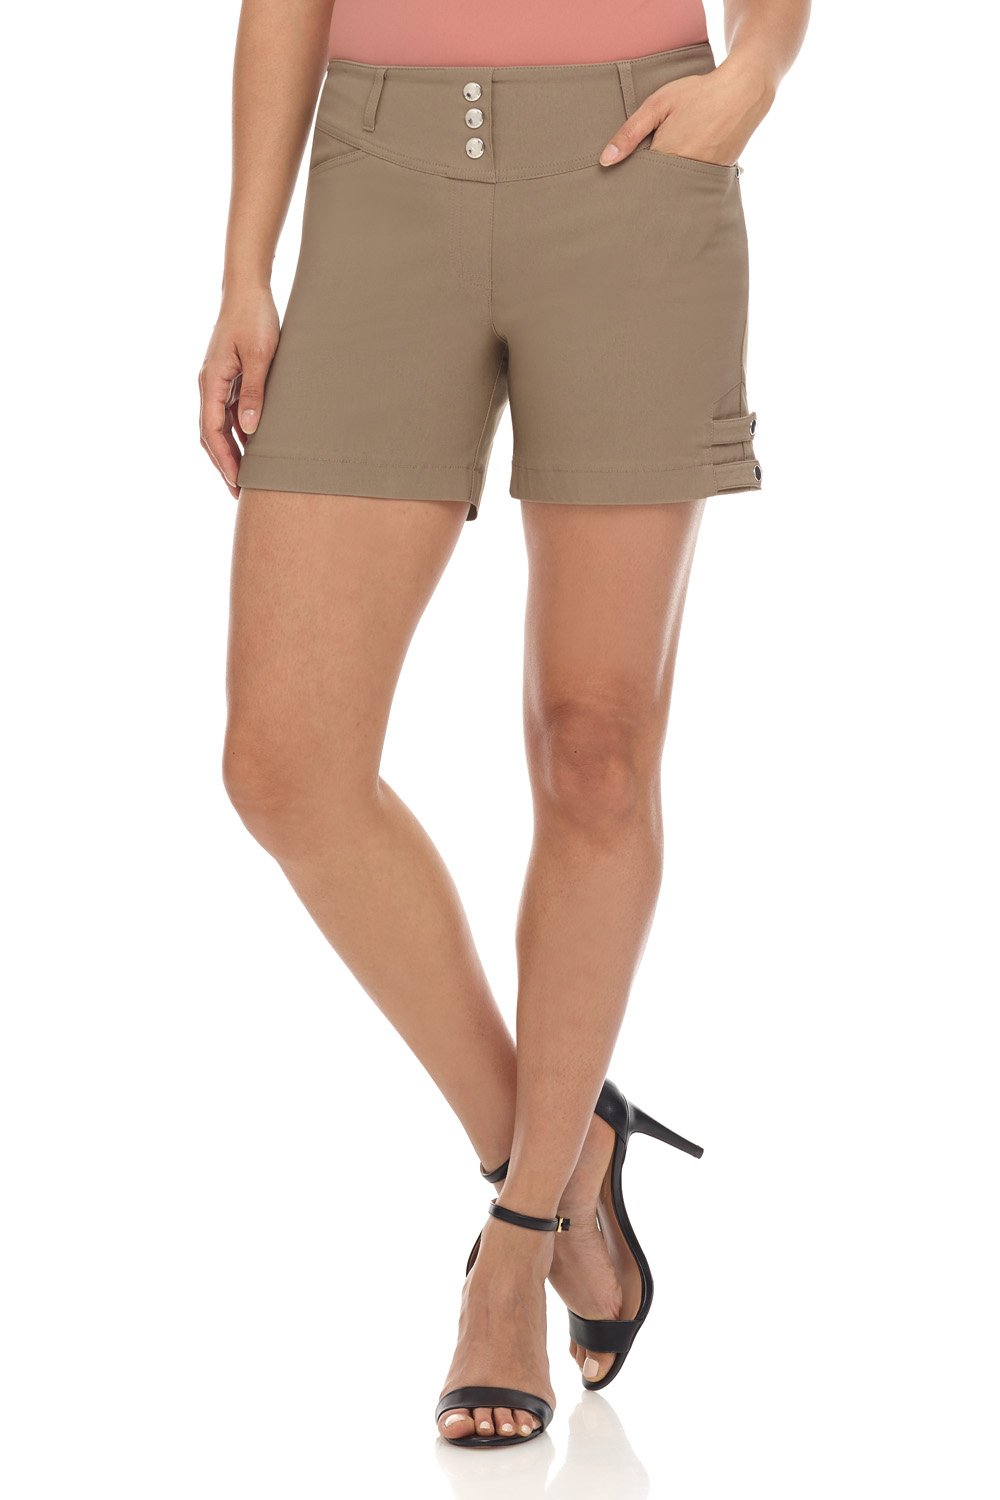 Rekucci Women's Ease Into Comfort Stretchable Pull-On 5'' Slimming Tab Short (14,Oatmeal)